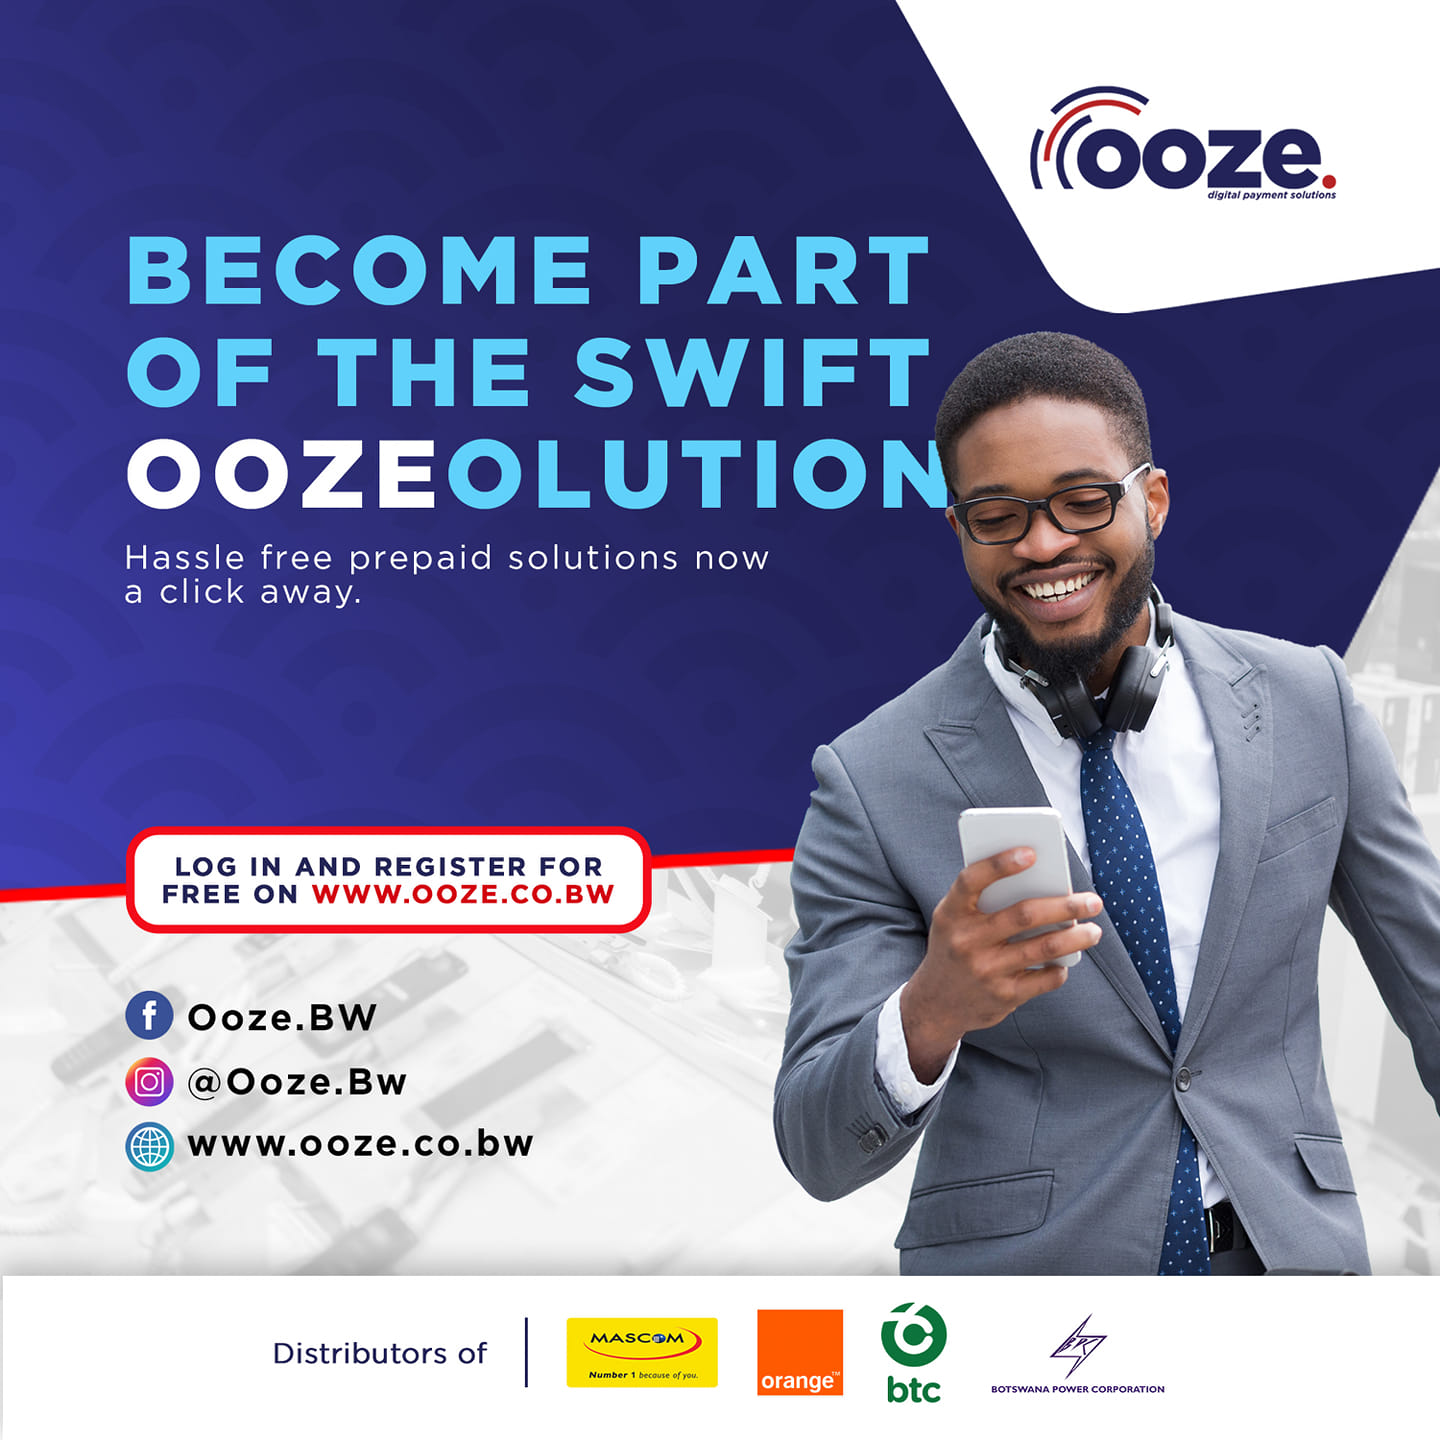 Join the Ooze Revolution!